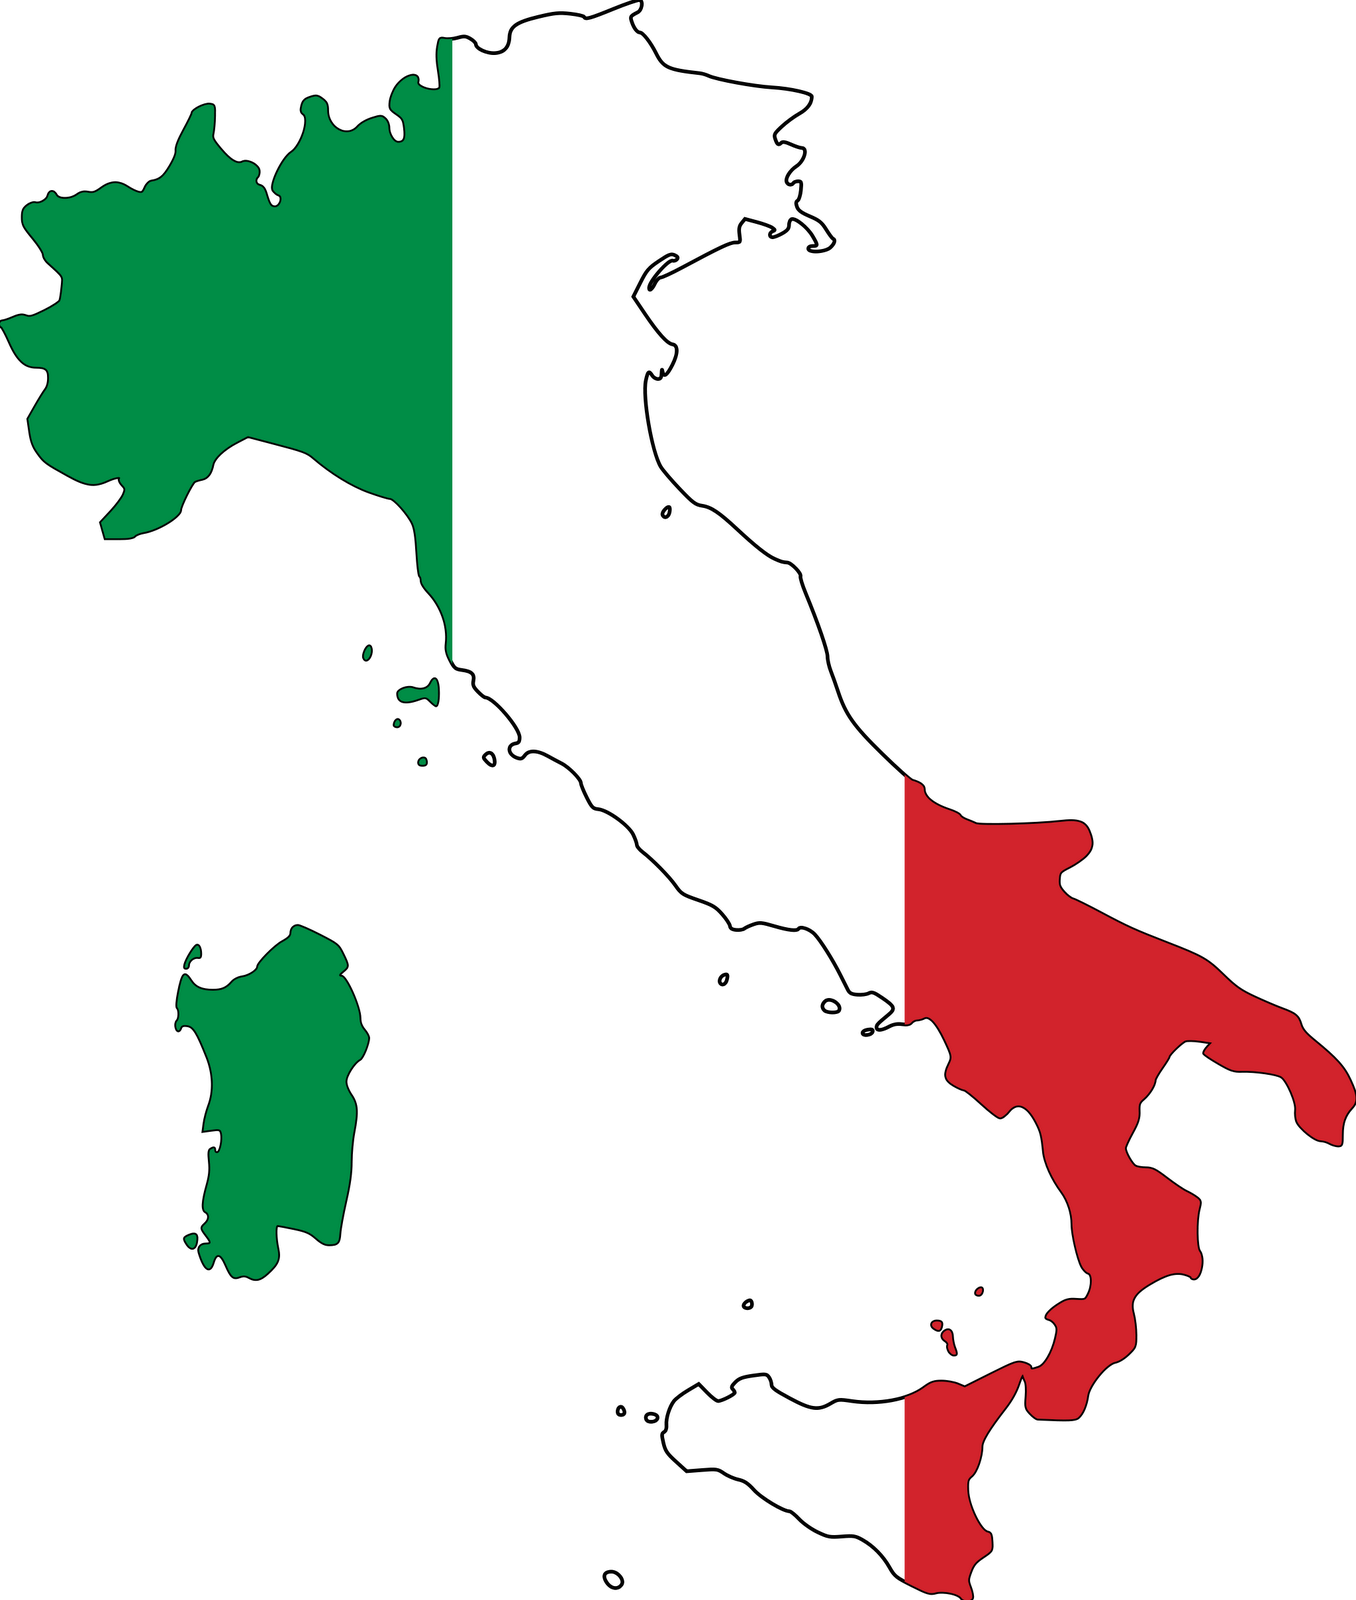 Italy clipart #18, Download drawings